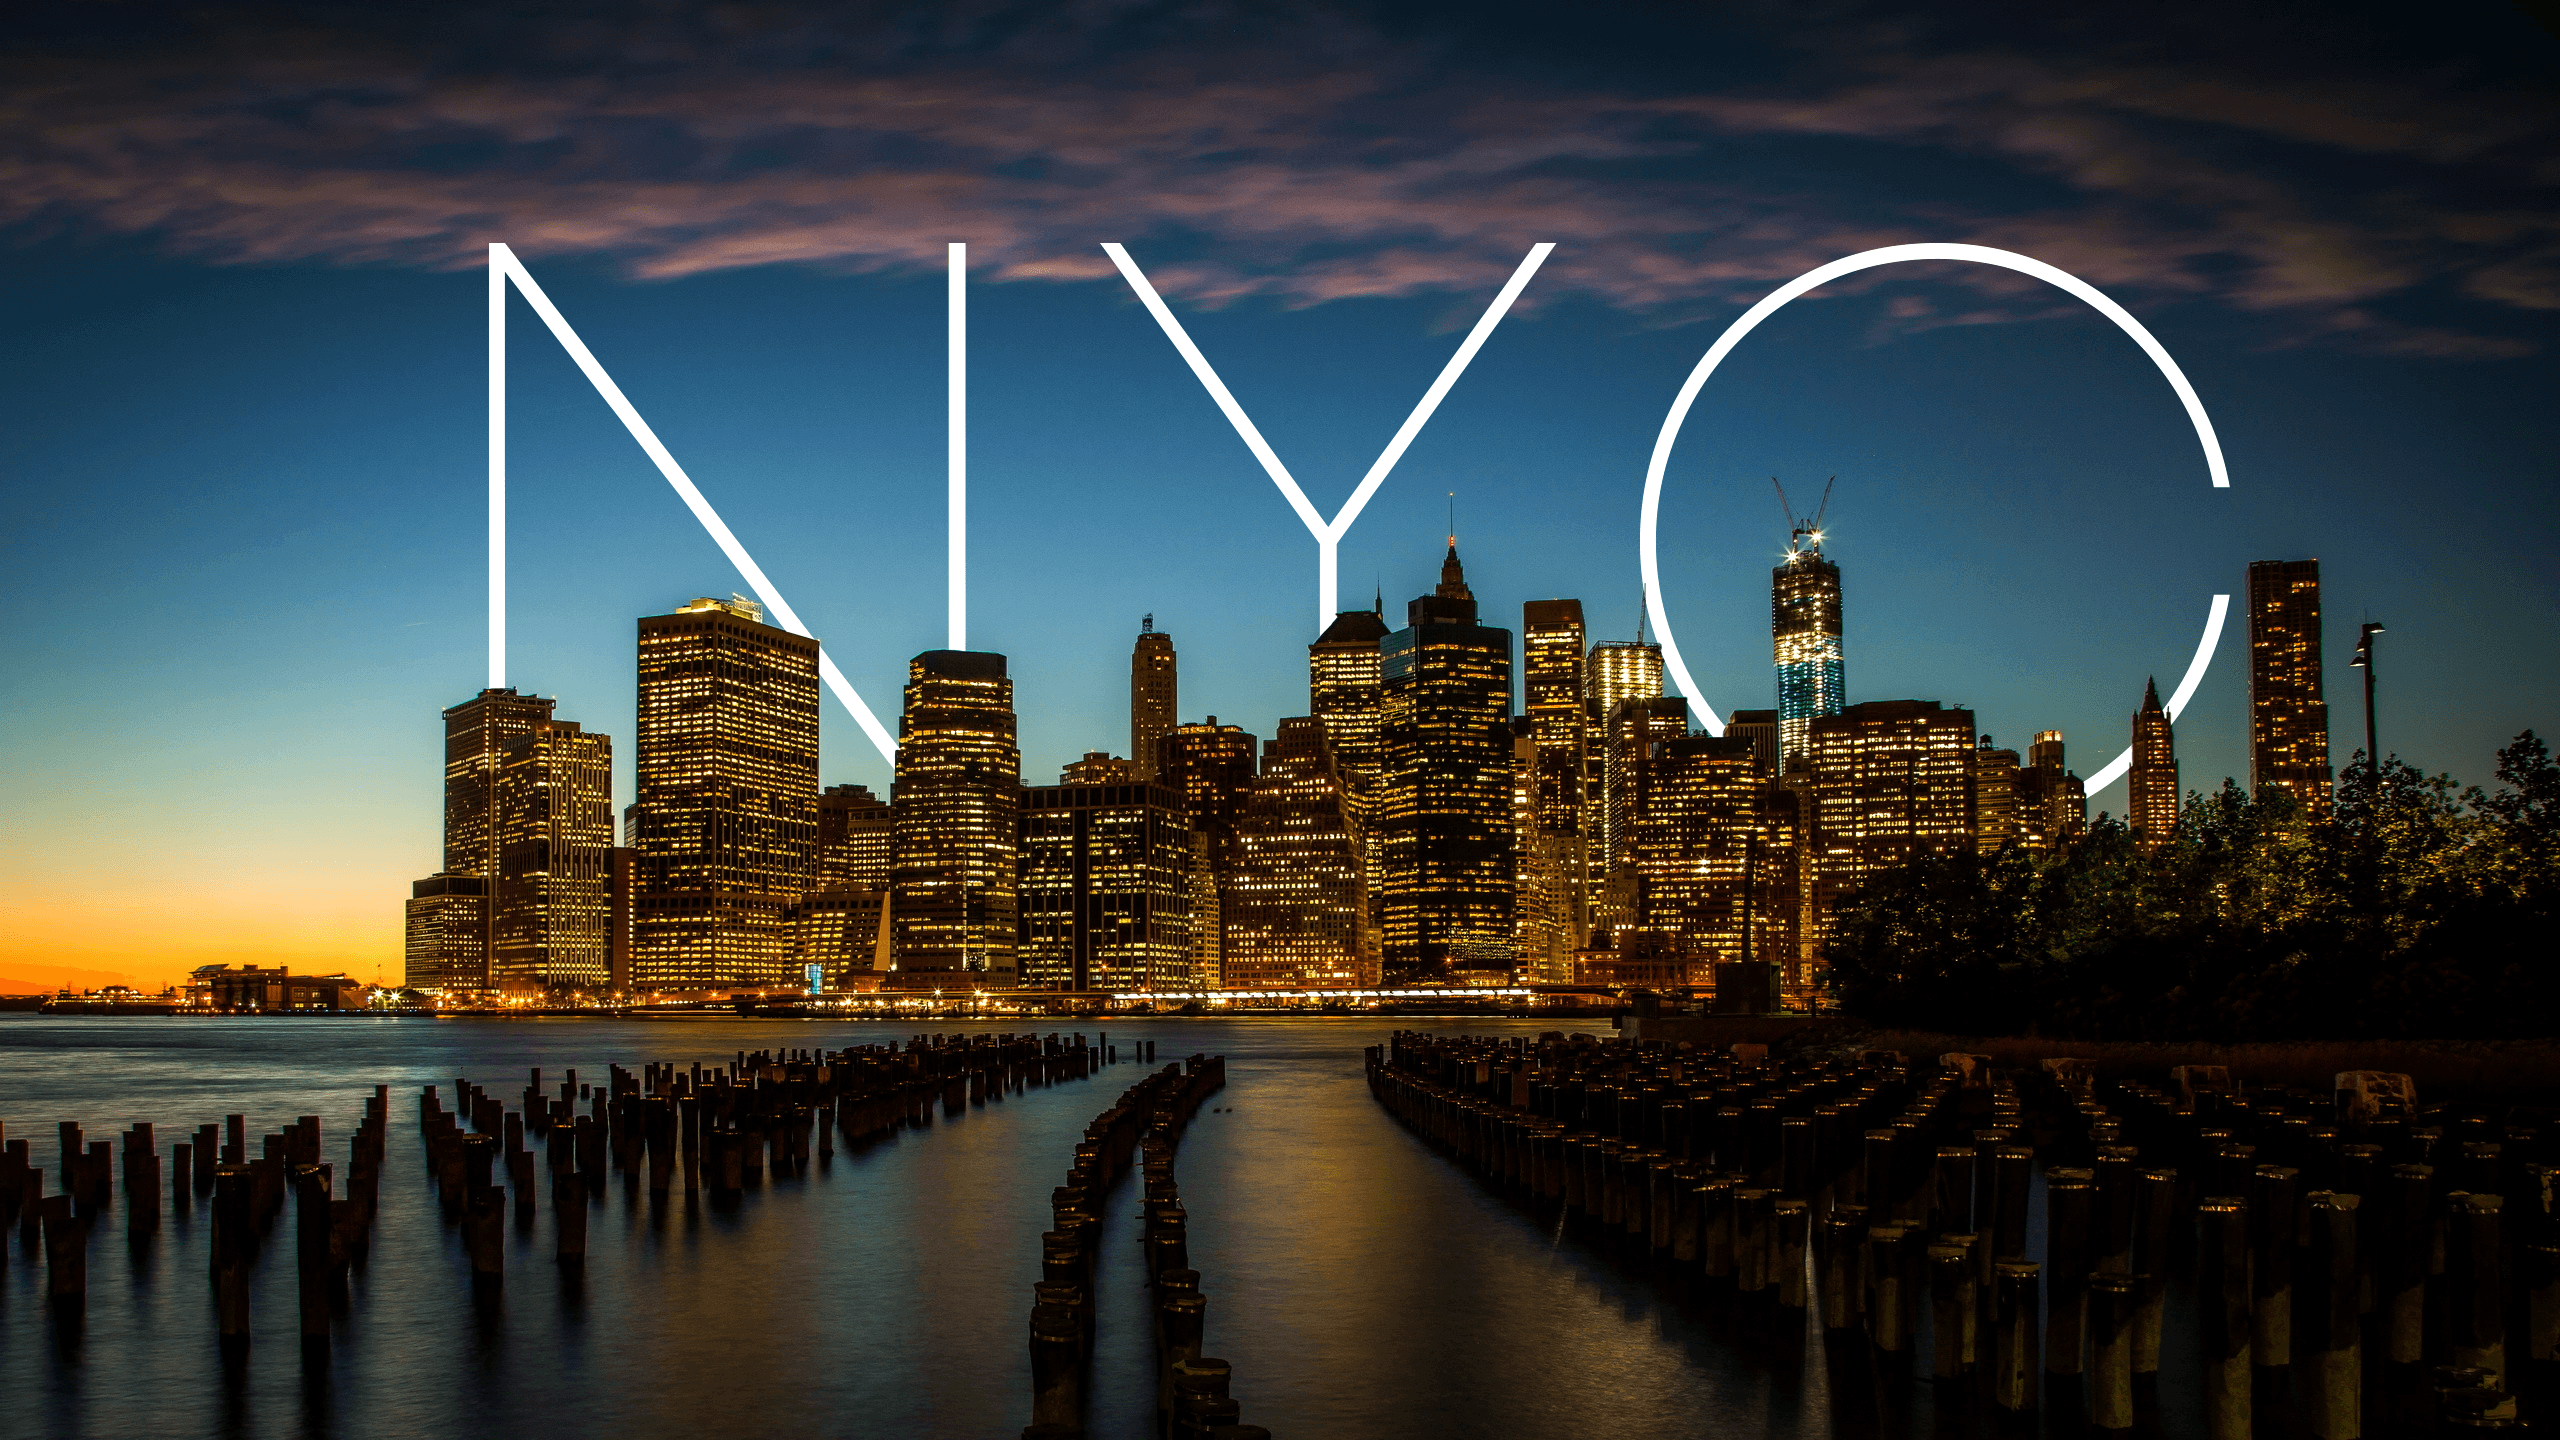 new york hd wallpapers 1080p, new york city backgrounds